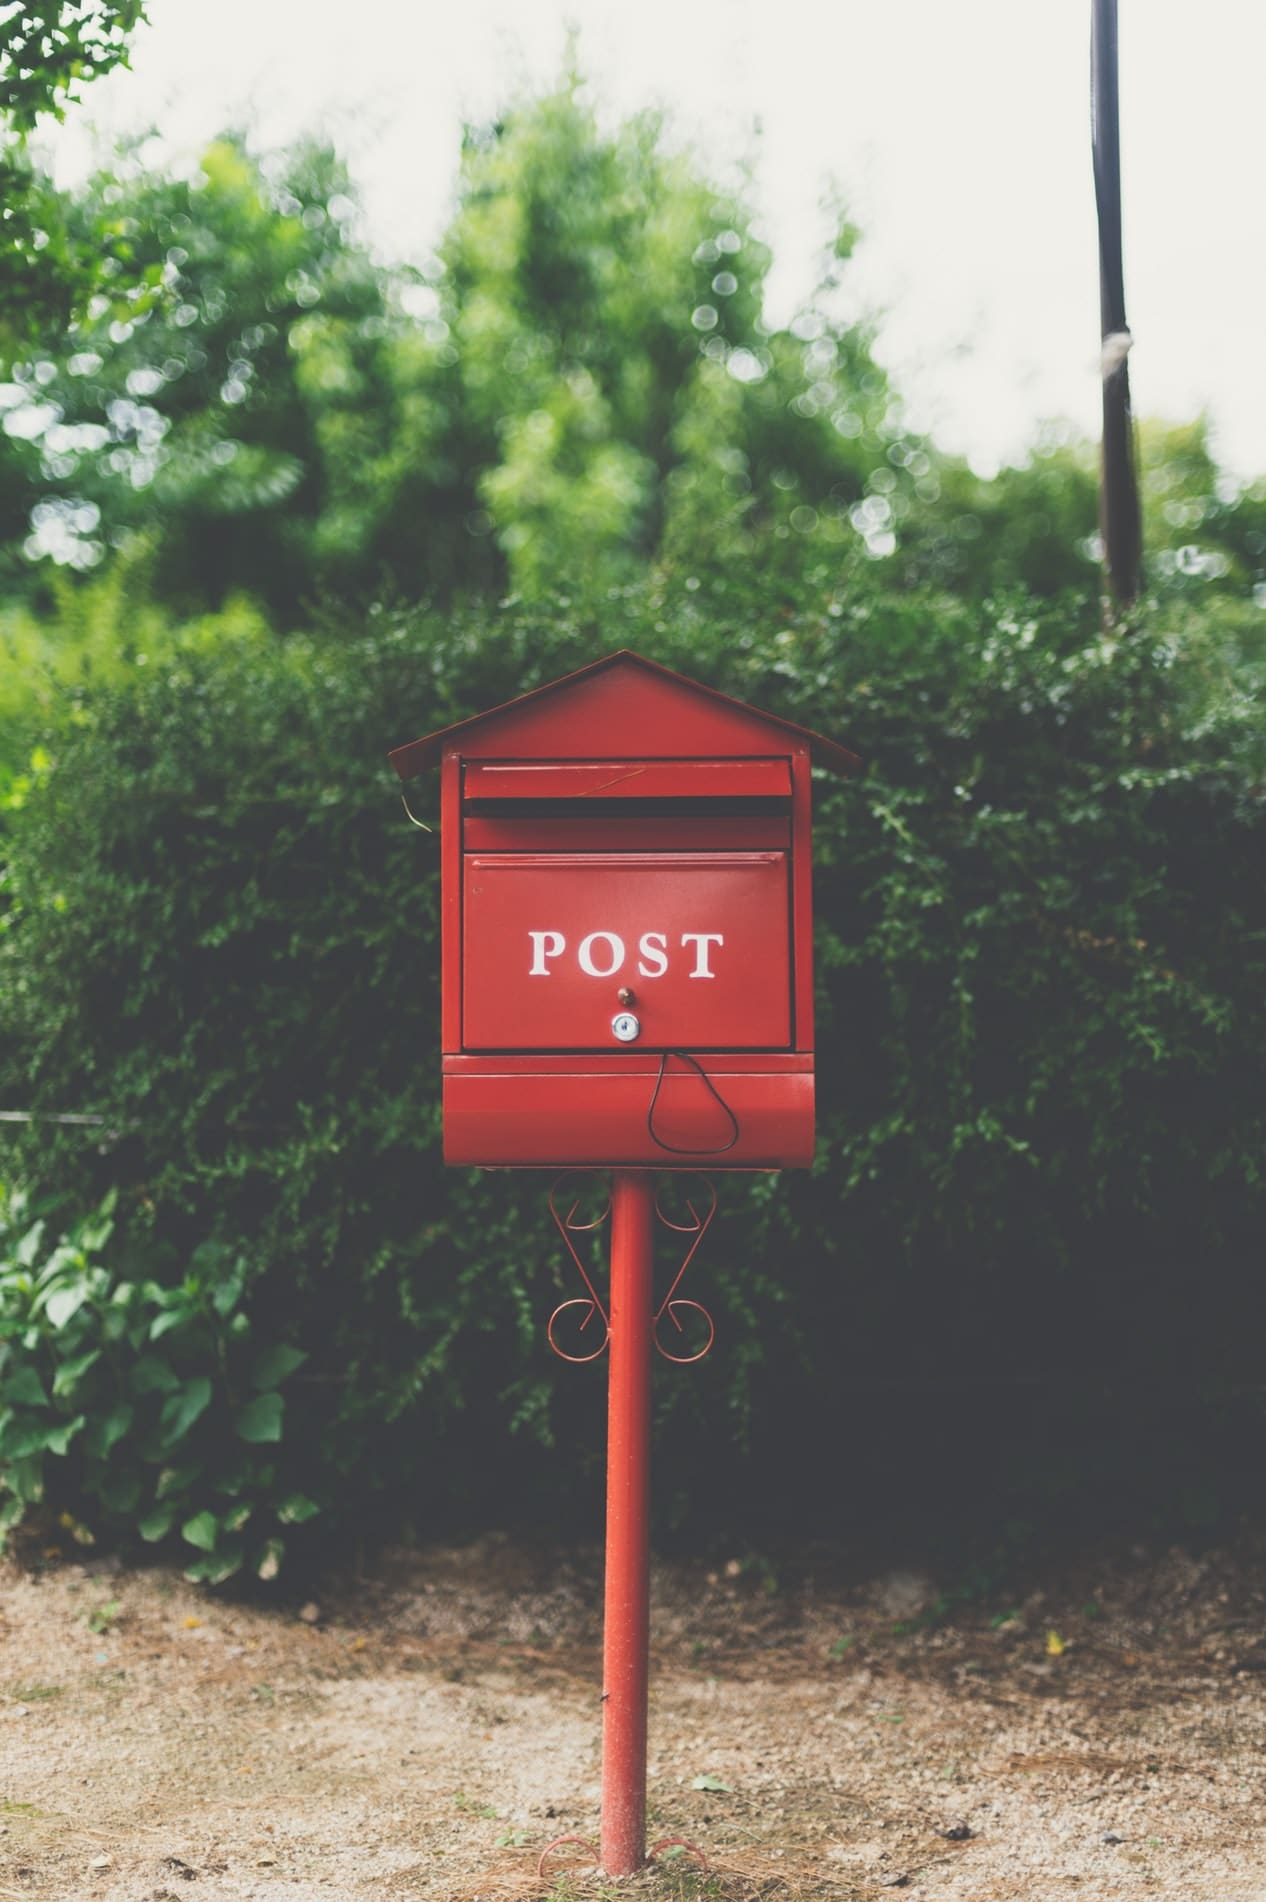 Sample Letter To Write To Your Ex To Get Them Back - The